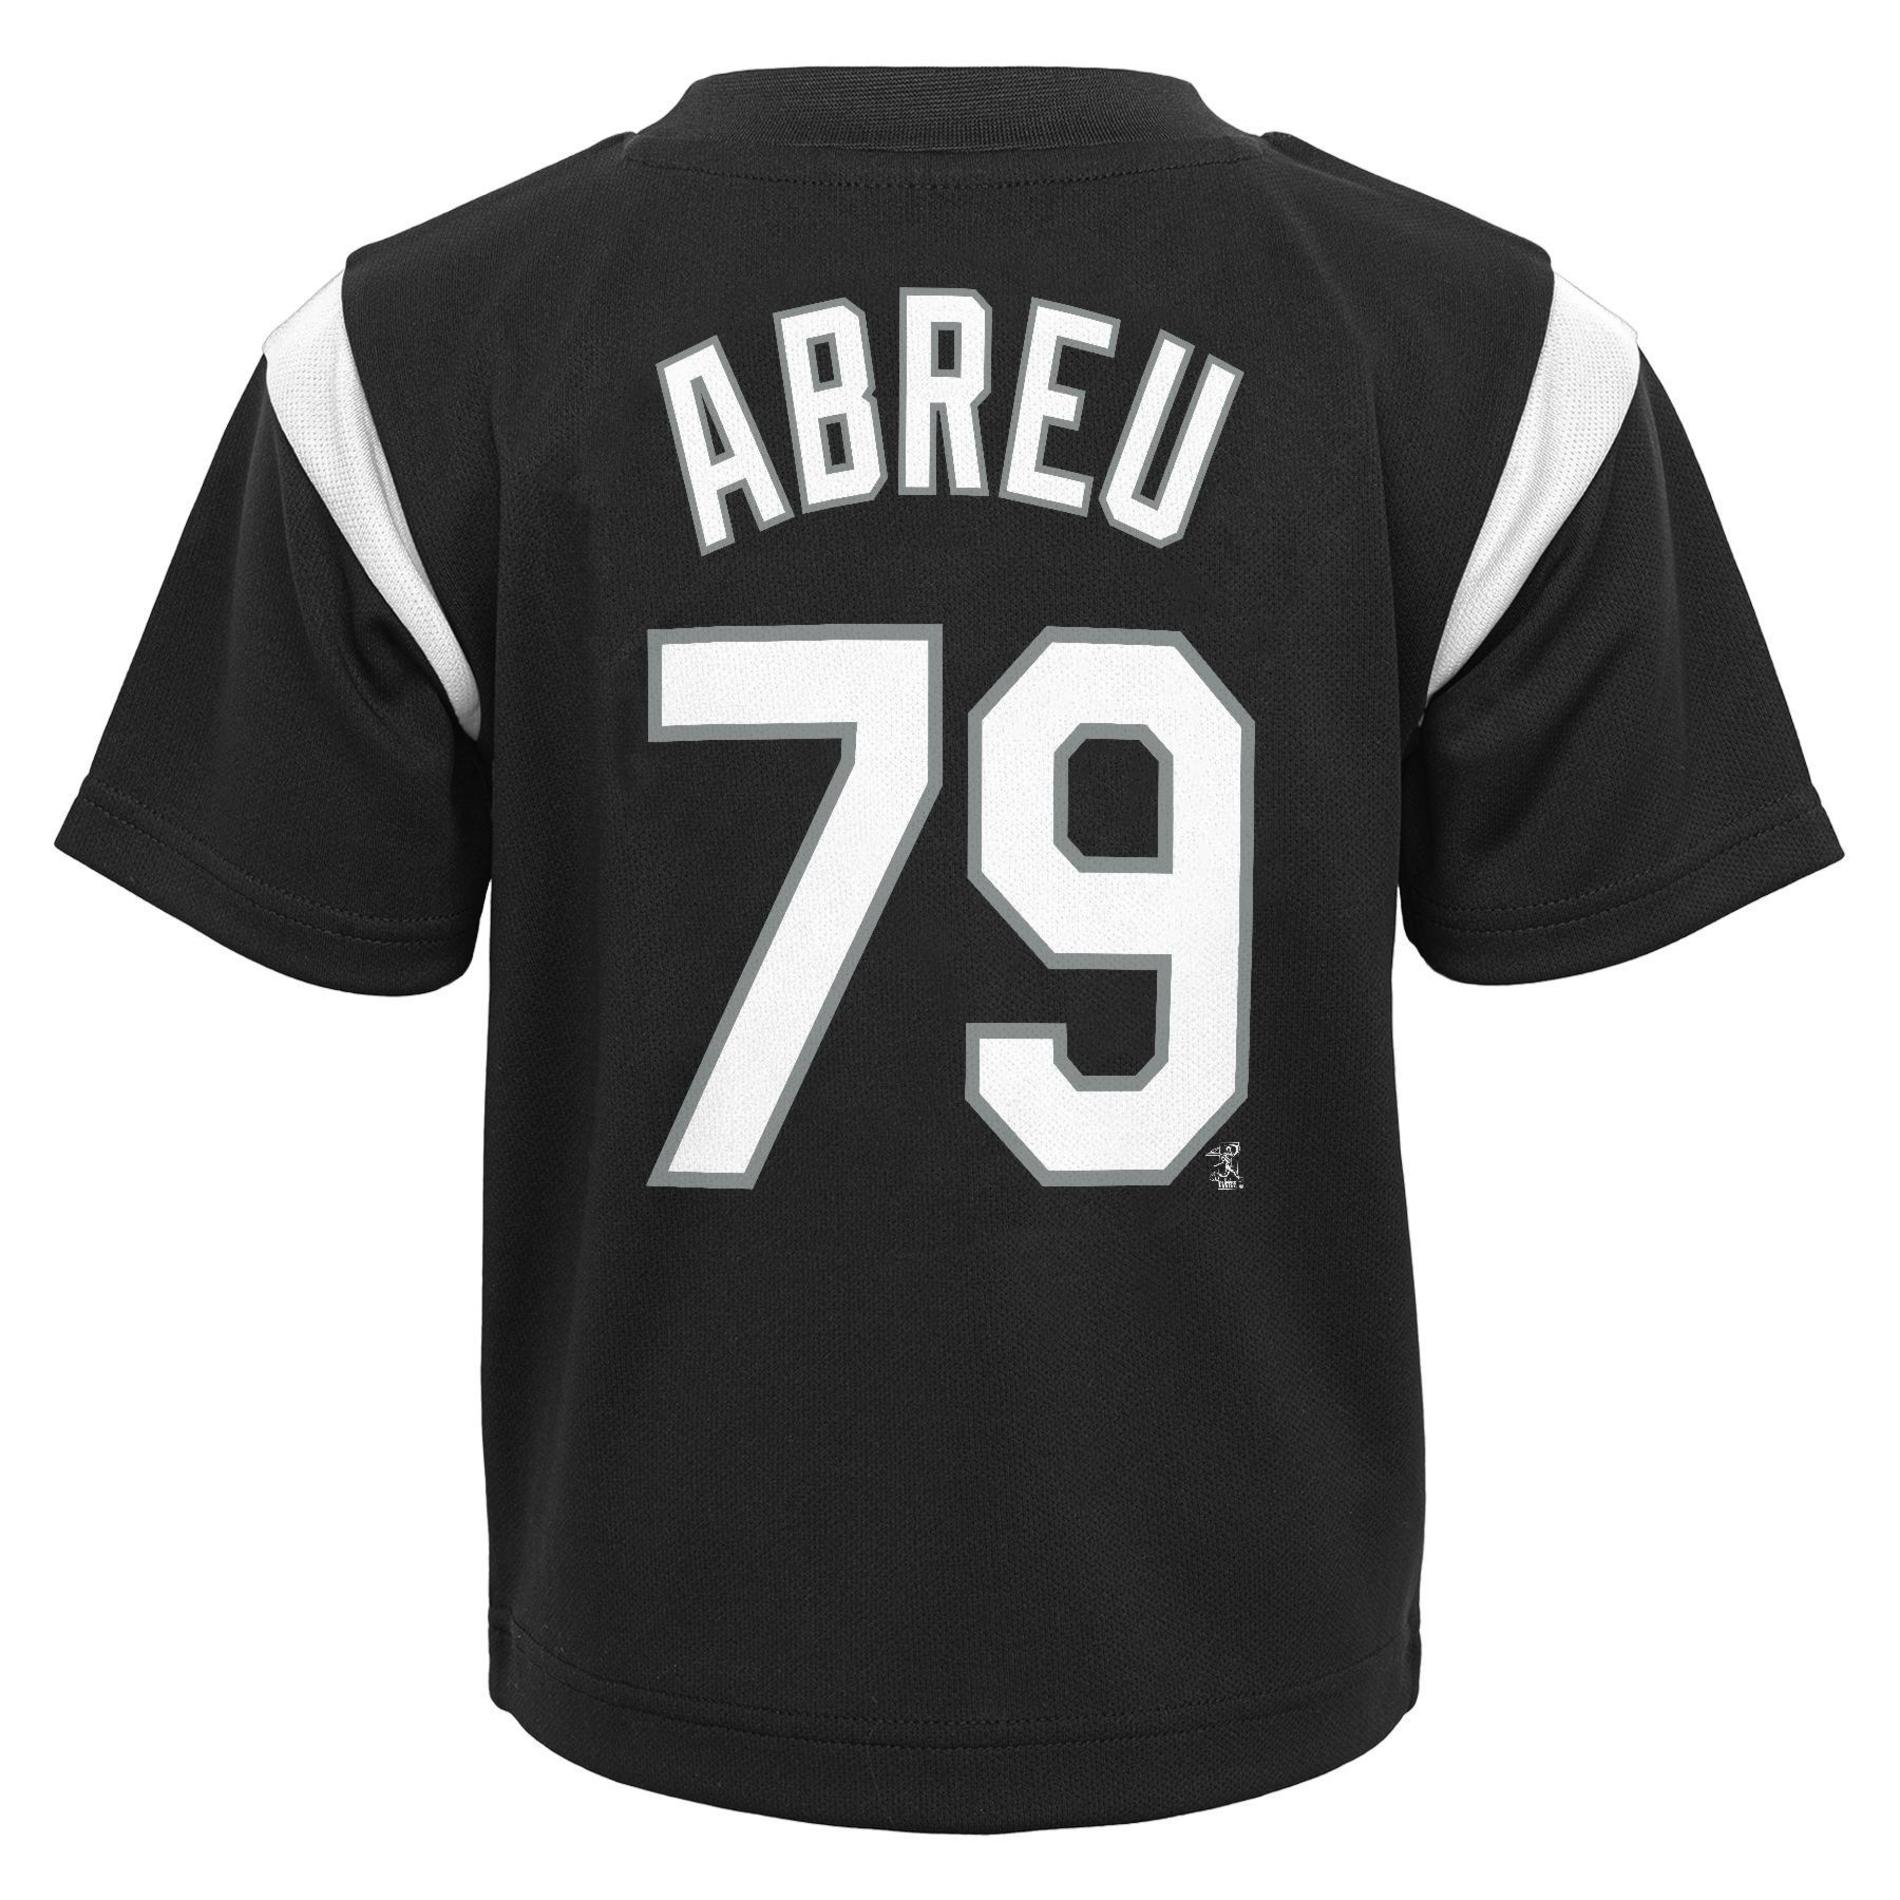 MLB Jose Abreu Boys' Graphic T-Shirt - Chicago White Sox, Size: Small